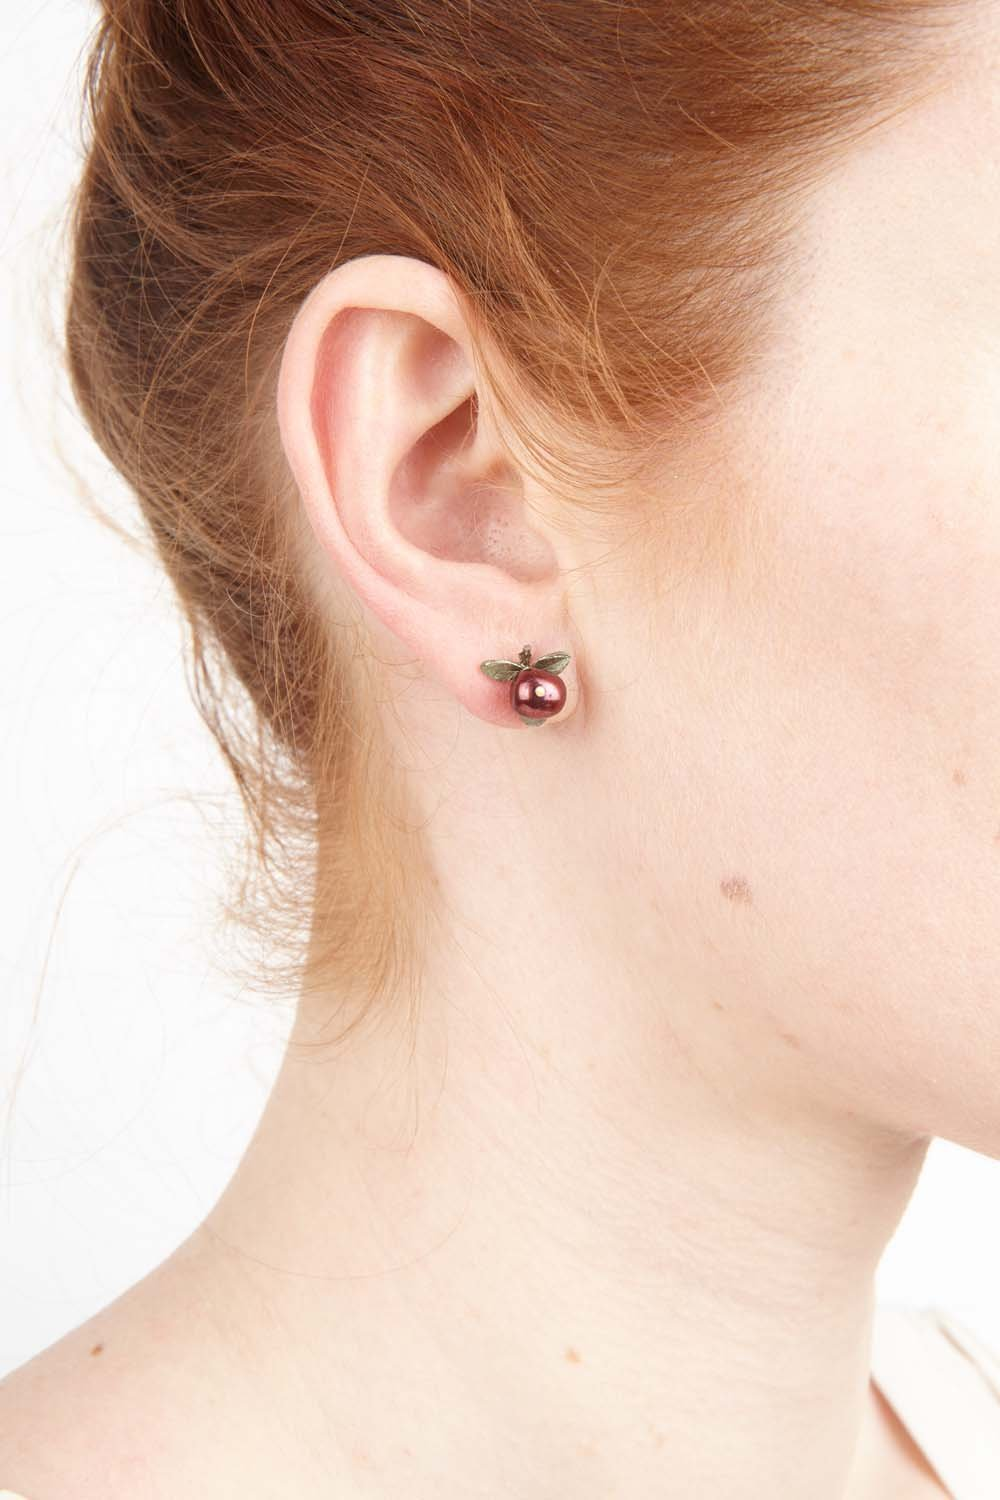 Cranberry Earrings - Post